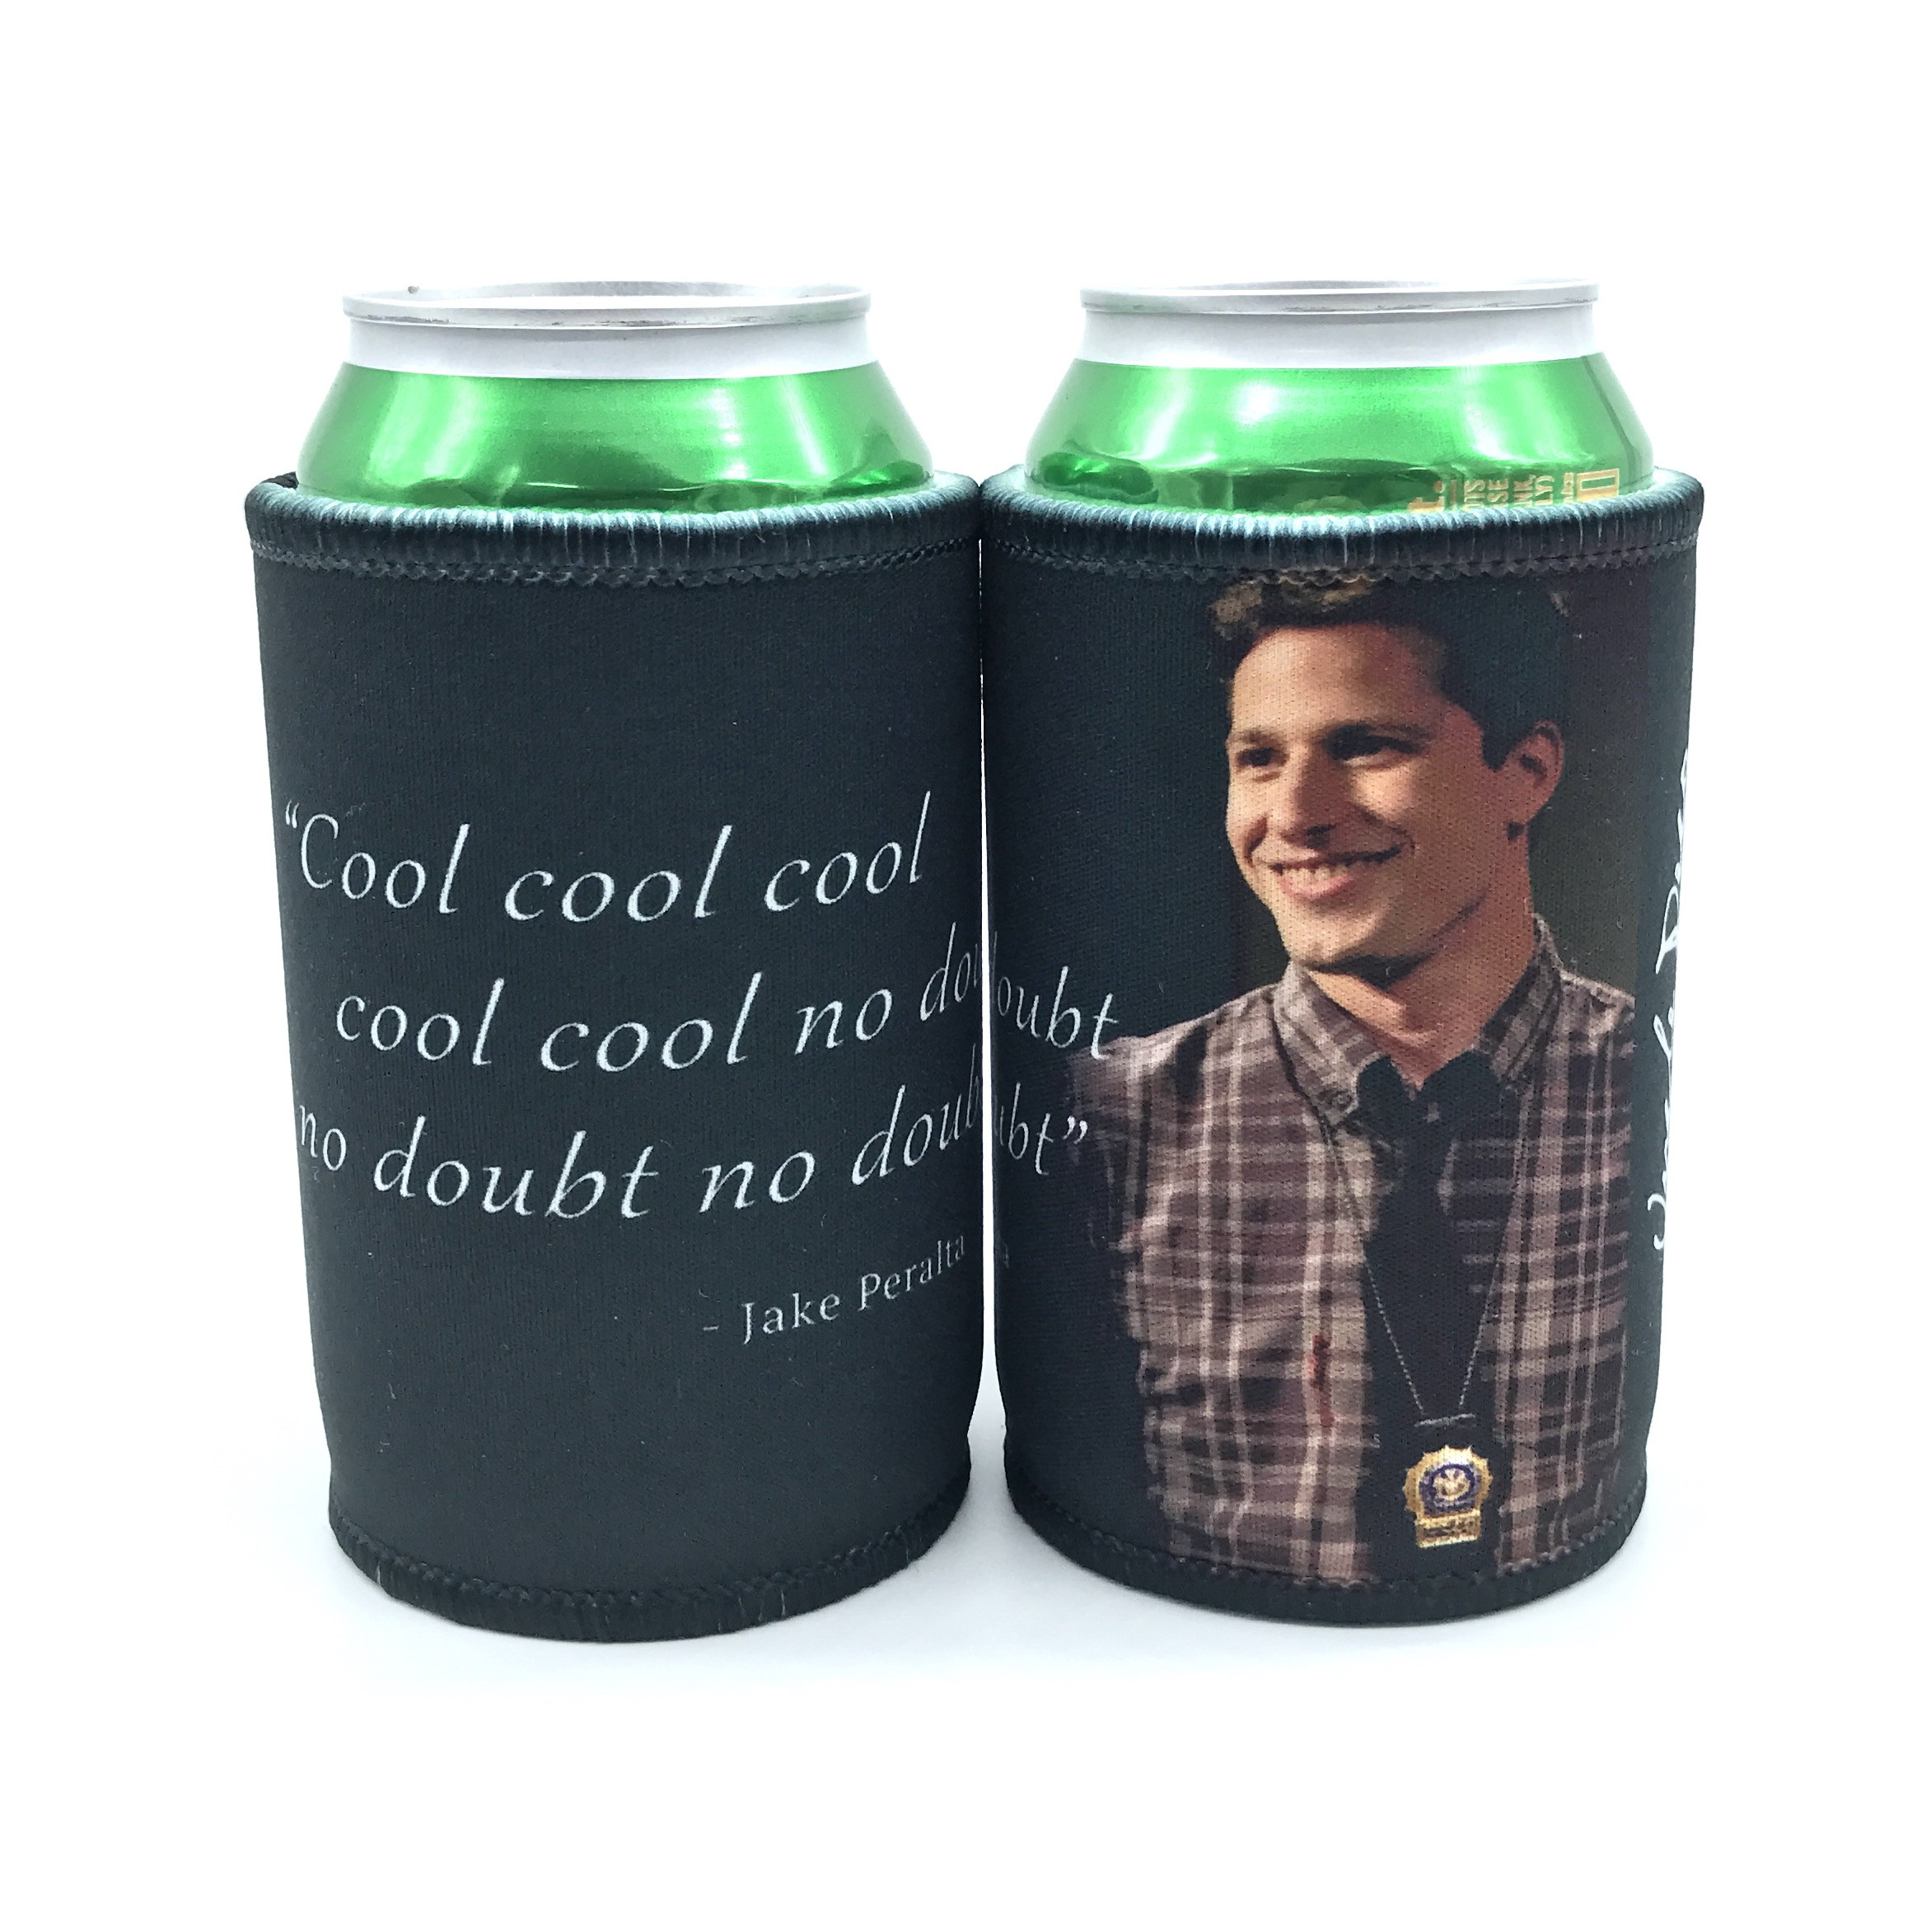 COOL COOL COOL STUBBY HOLDER